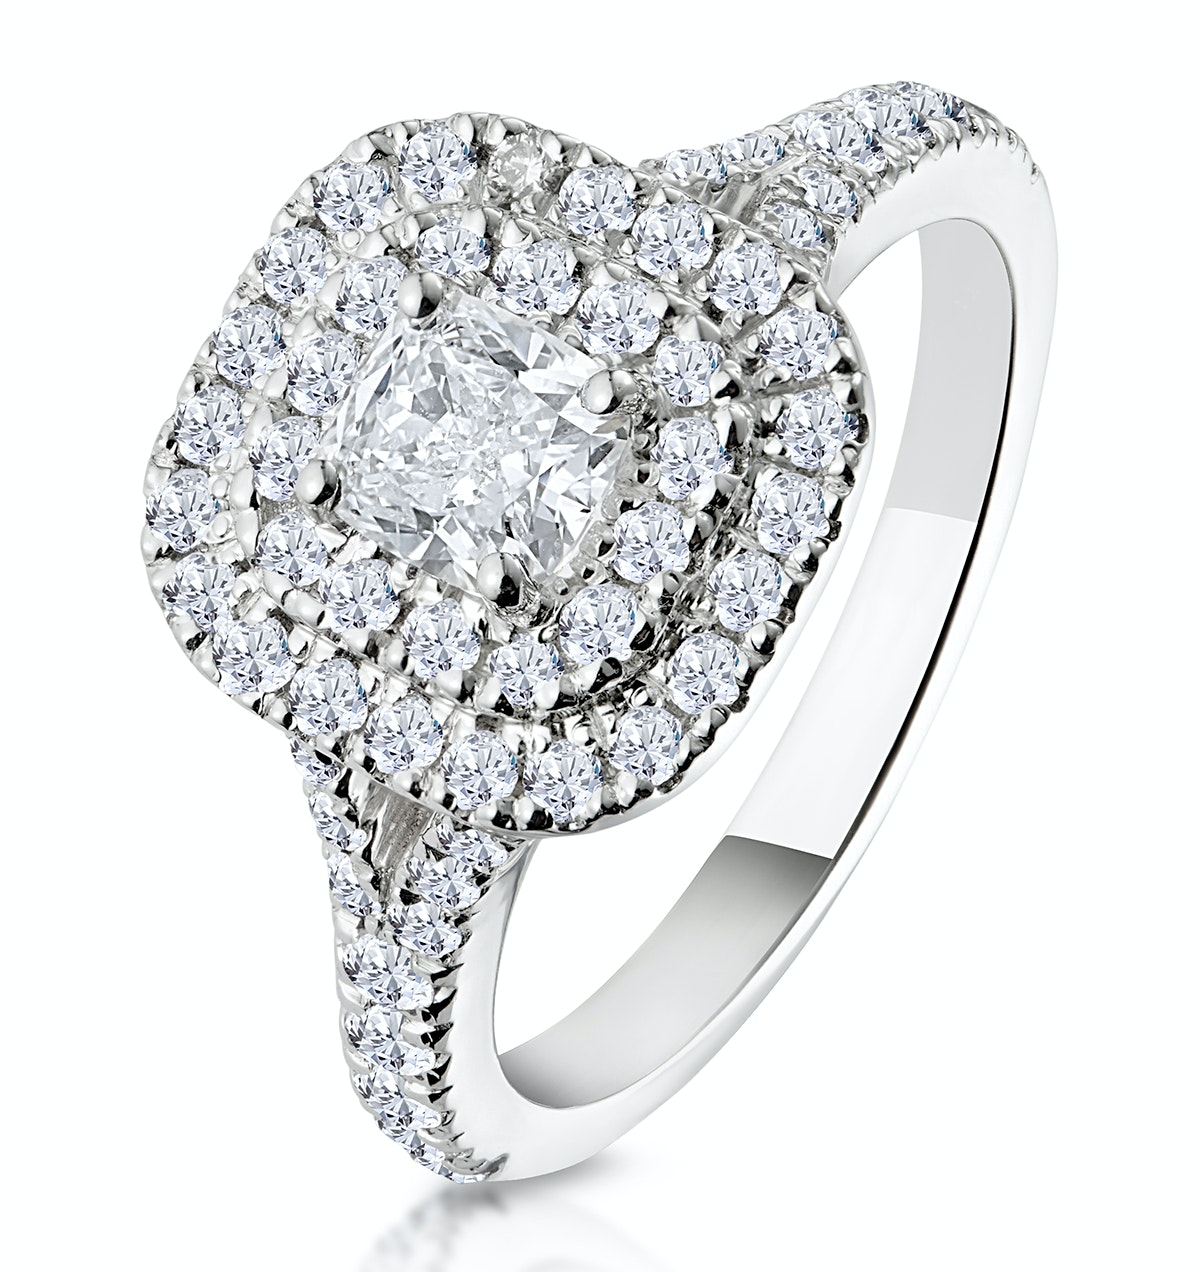 Anastasia GIA Diamond Halo Engagement Ring 18K White Gold 1.30ct G/VS1